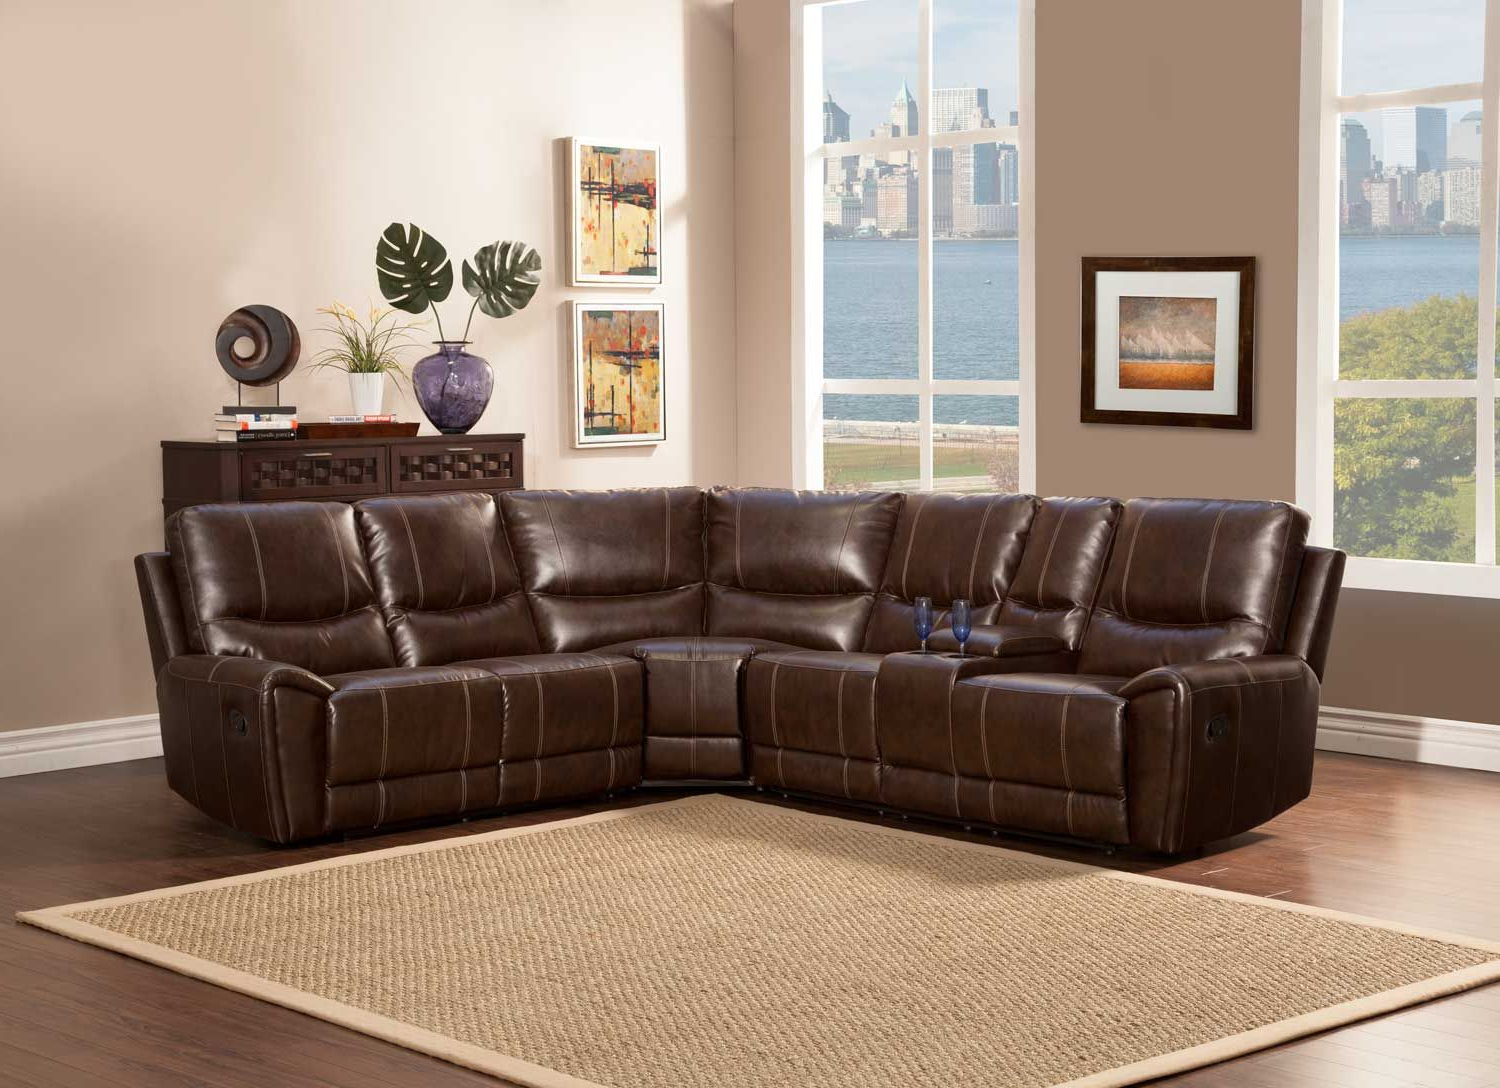 4pc Beckett Contemporary Sectional Sofas And Ottoman Sets With 2018 Gerald 4pc Sectional Set (View 7 of 20)